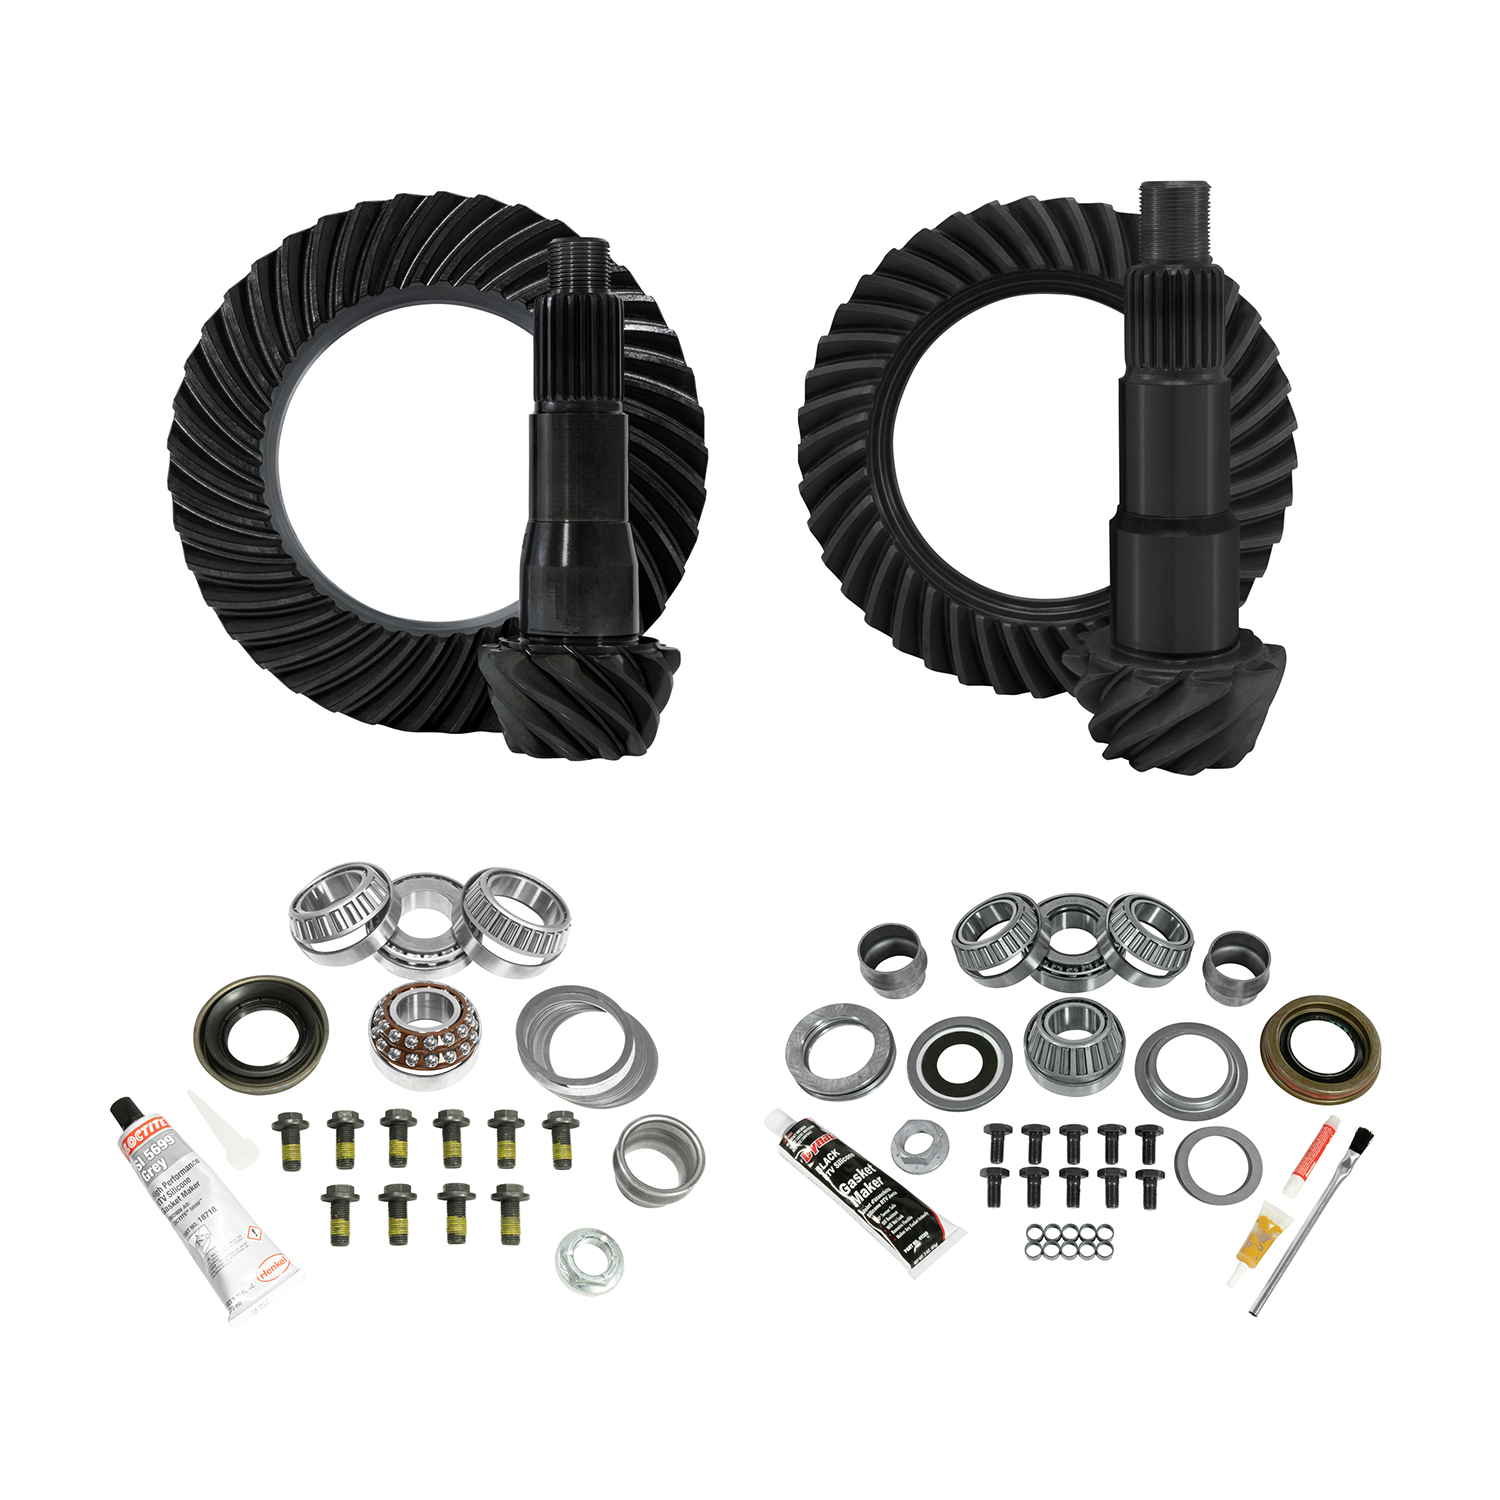 YGK073 - Yukon Complete Gear and Kit Pakage for JL Jeep Non-Rubicon, D35 Rear & D30 Front, 4:56 Gear Ratio